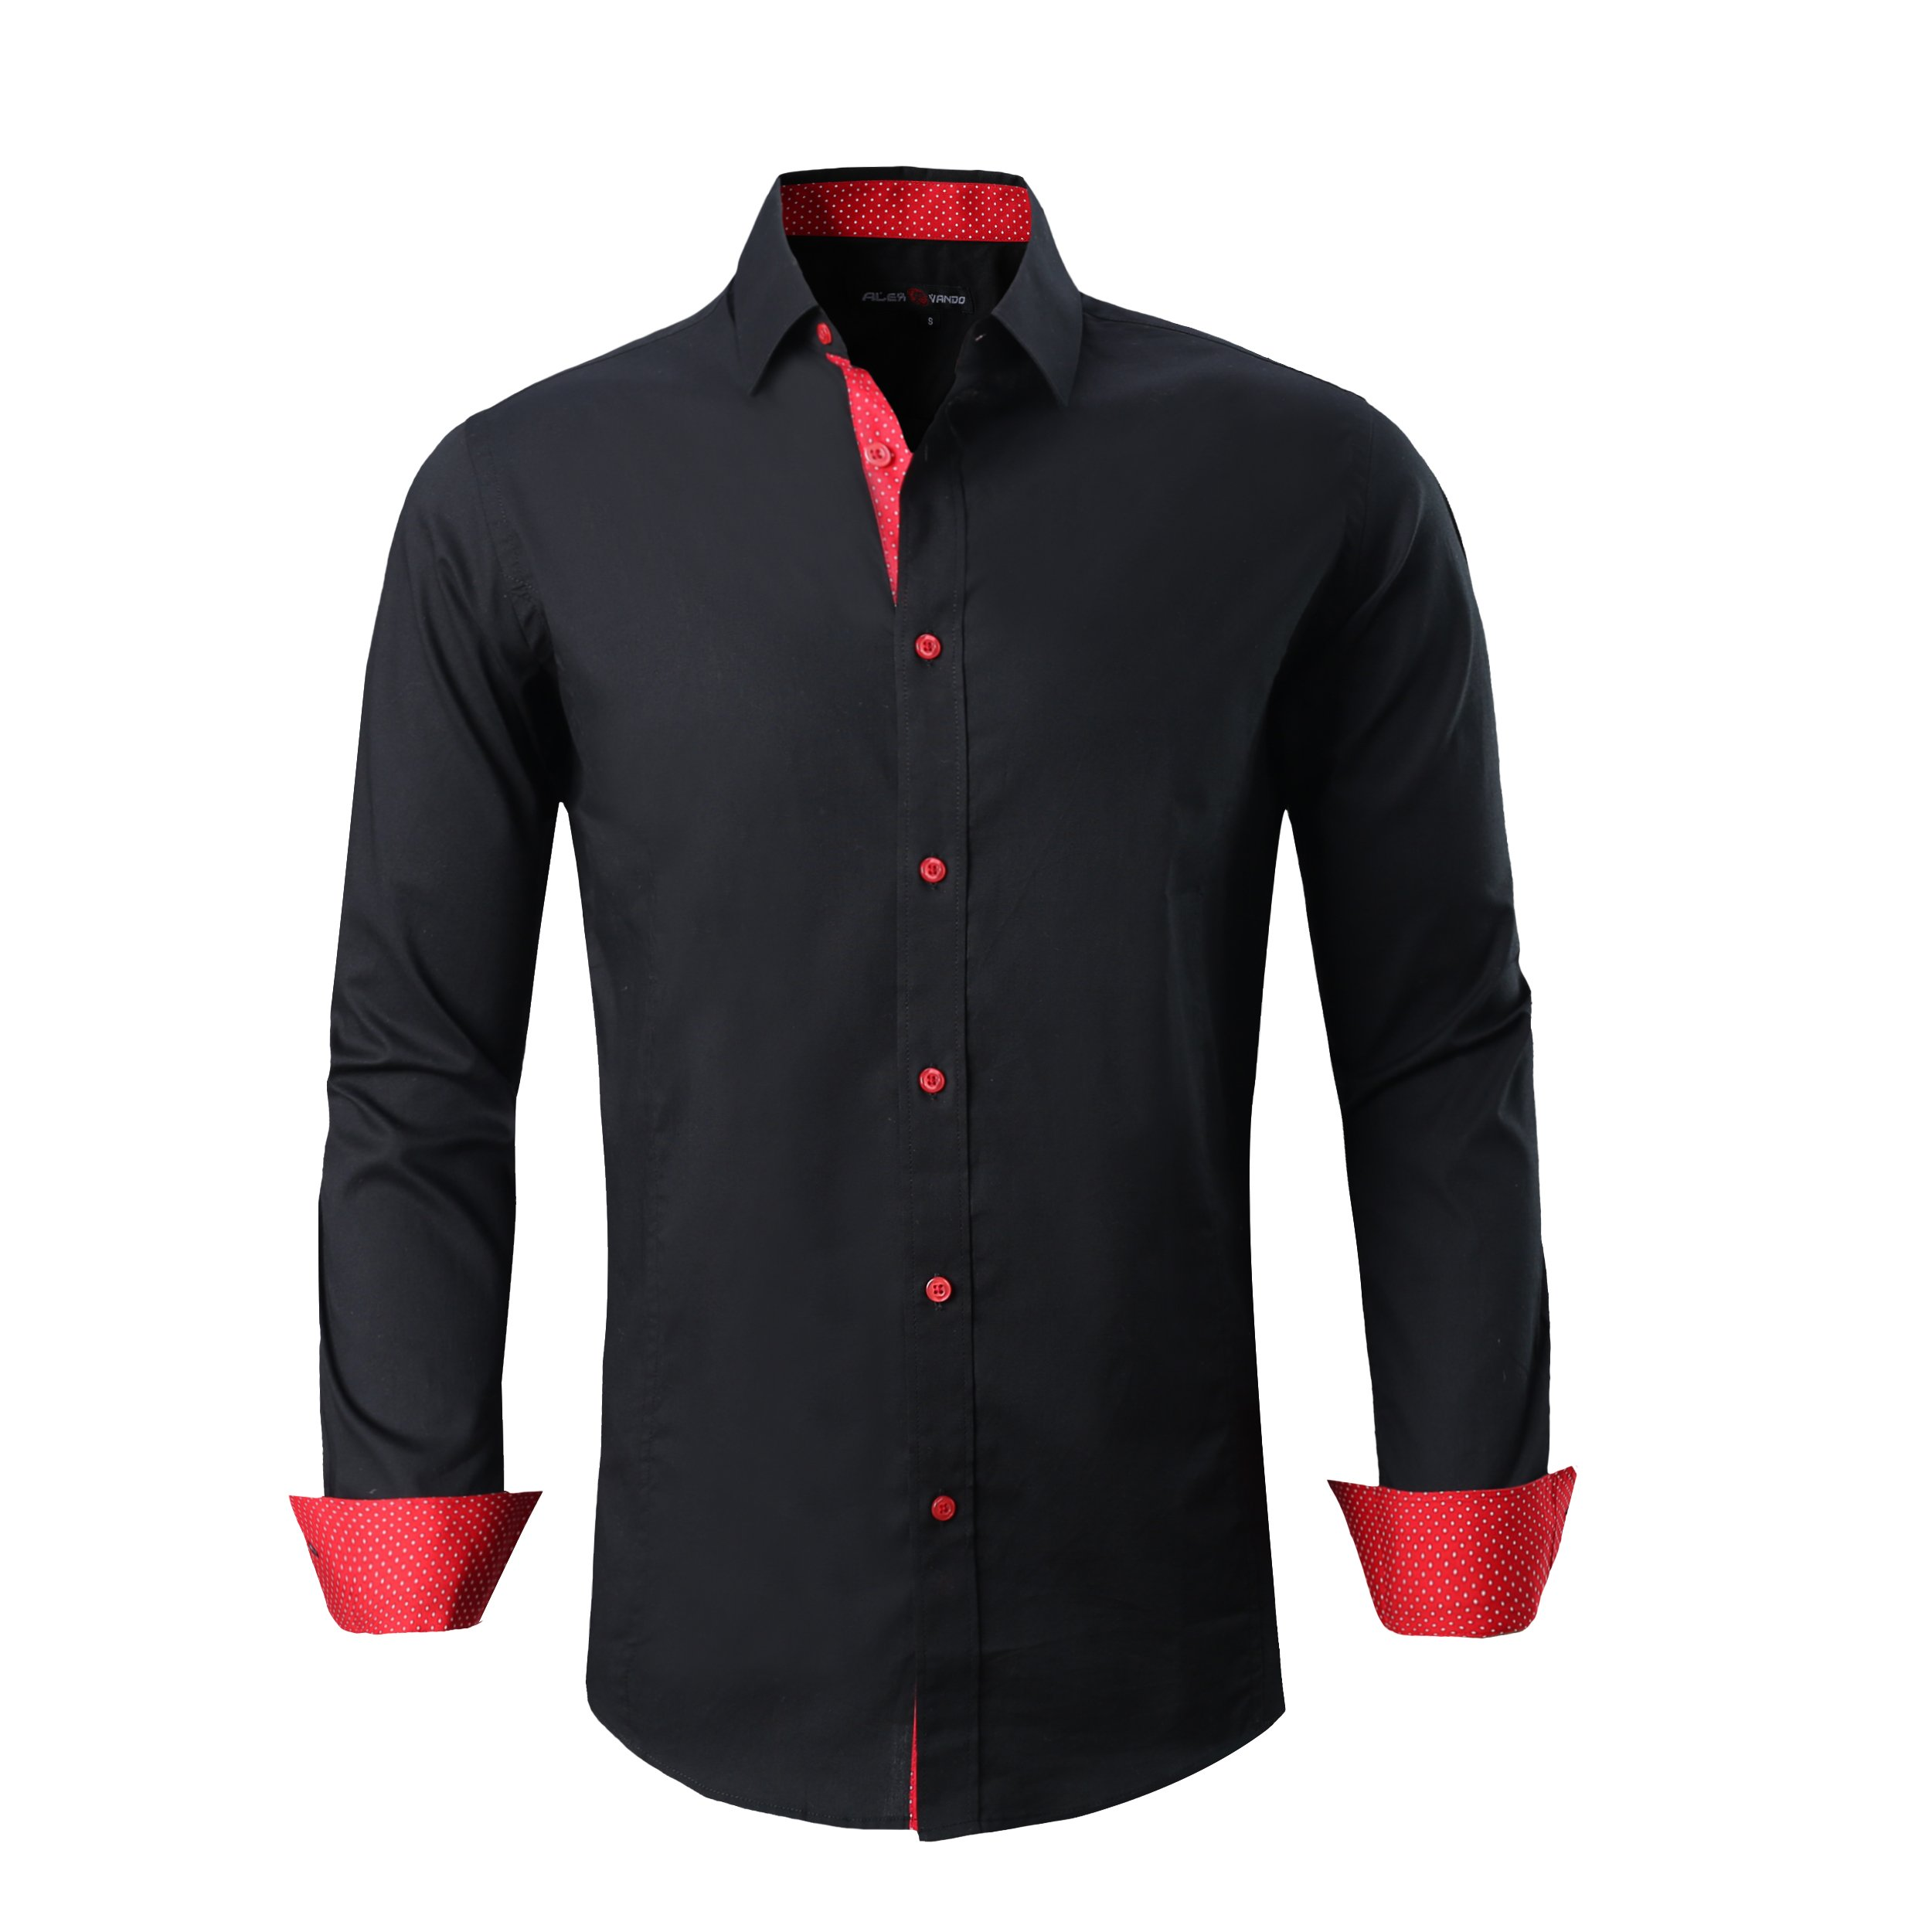 Alex Vando Mens Dress Shirts Regular Fit Long Sleeve Men Shirt(Black,Large) by Alex Vando